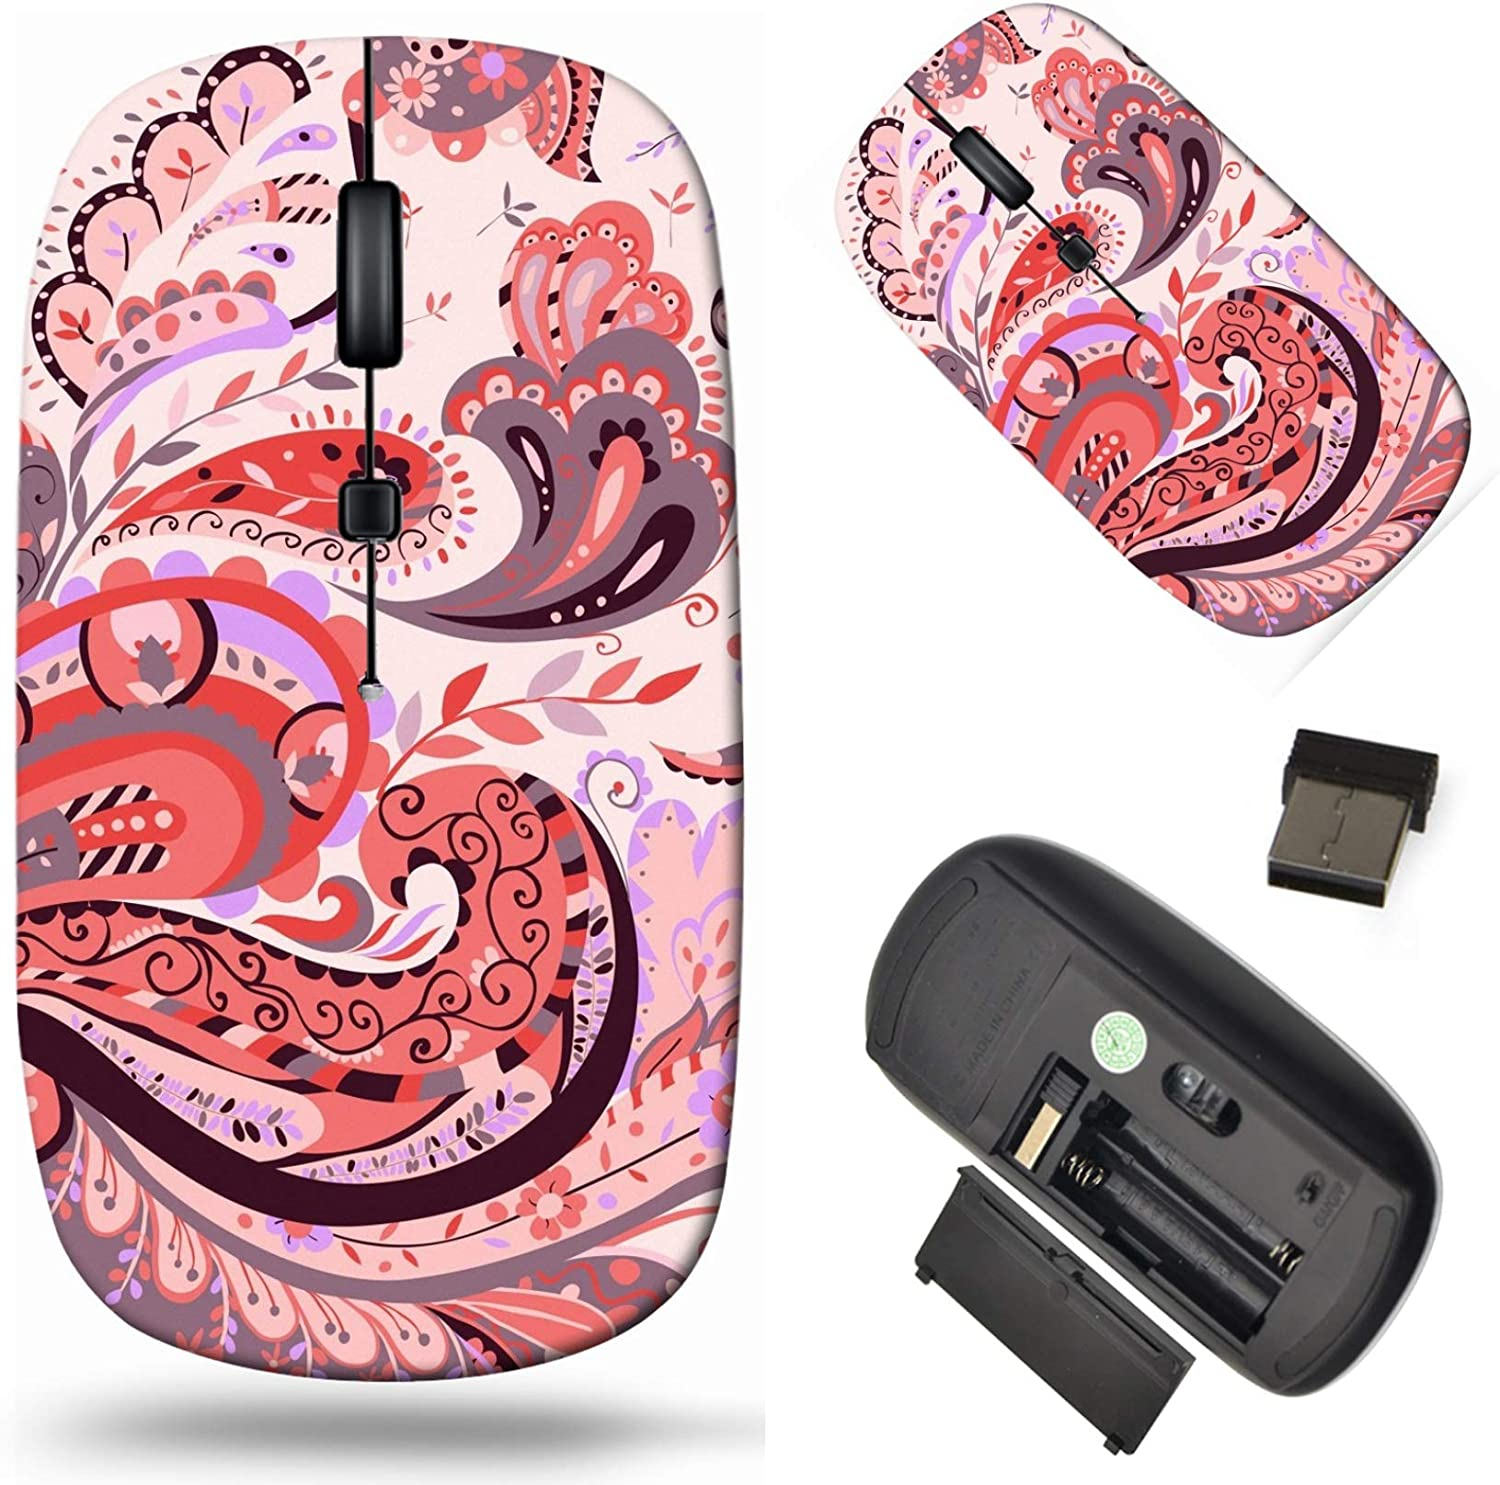 Wireless Computer Mouse 2.4G with USB Receiver Atlanta Mall Laptop Cor Bargain sale